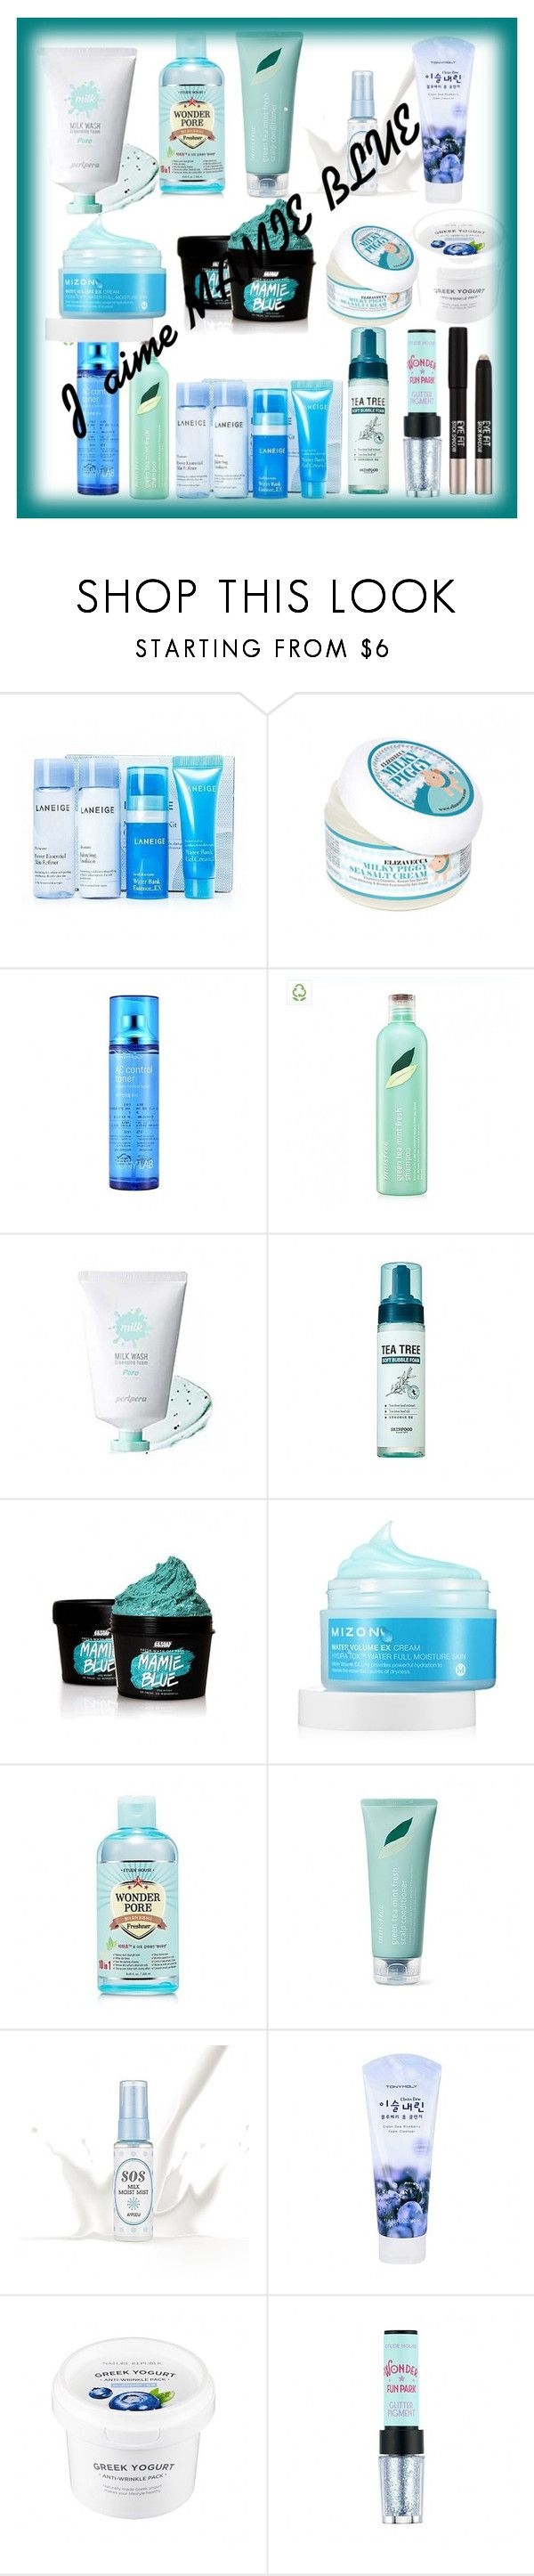 """""""J'aime MAMIE BLUE"""" by annbs ❤ liked on Polyvore featuring beauty, SkinCare, Innisfree, peripera, Etude House, TONYMOLY, Missha, contest and MamieBlue"""